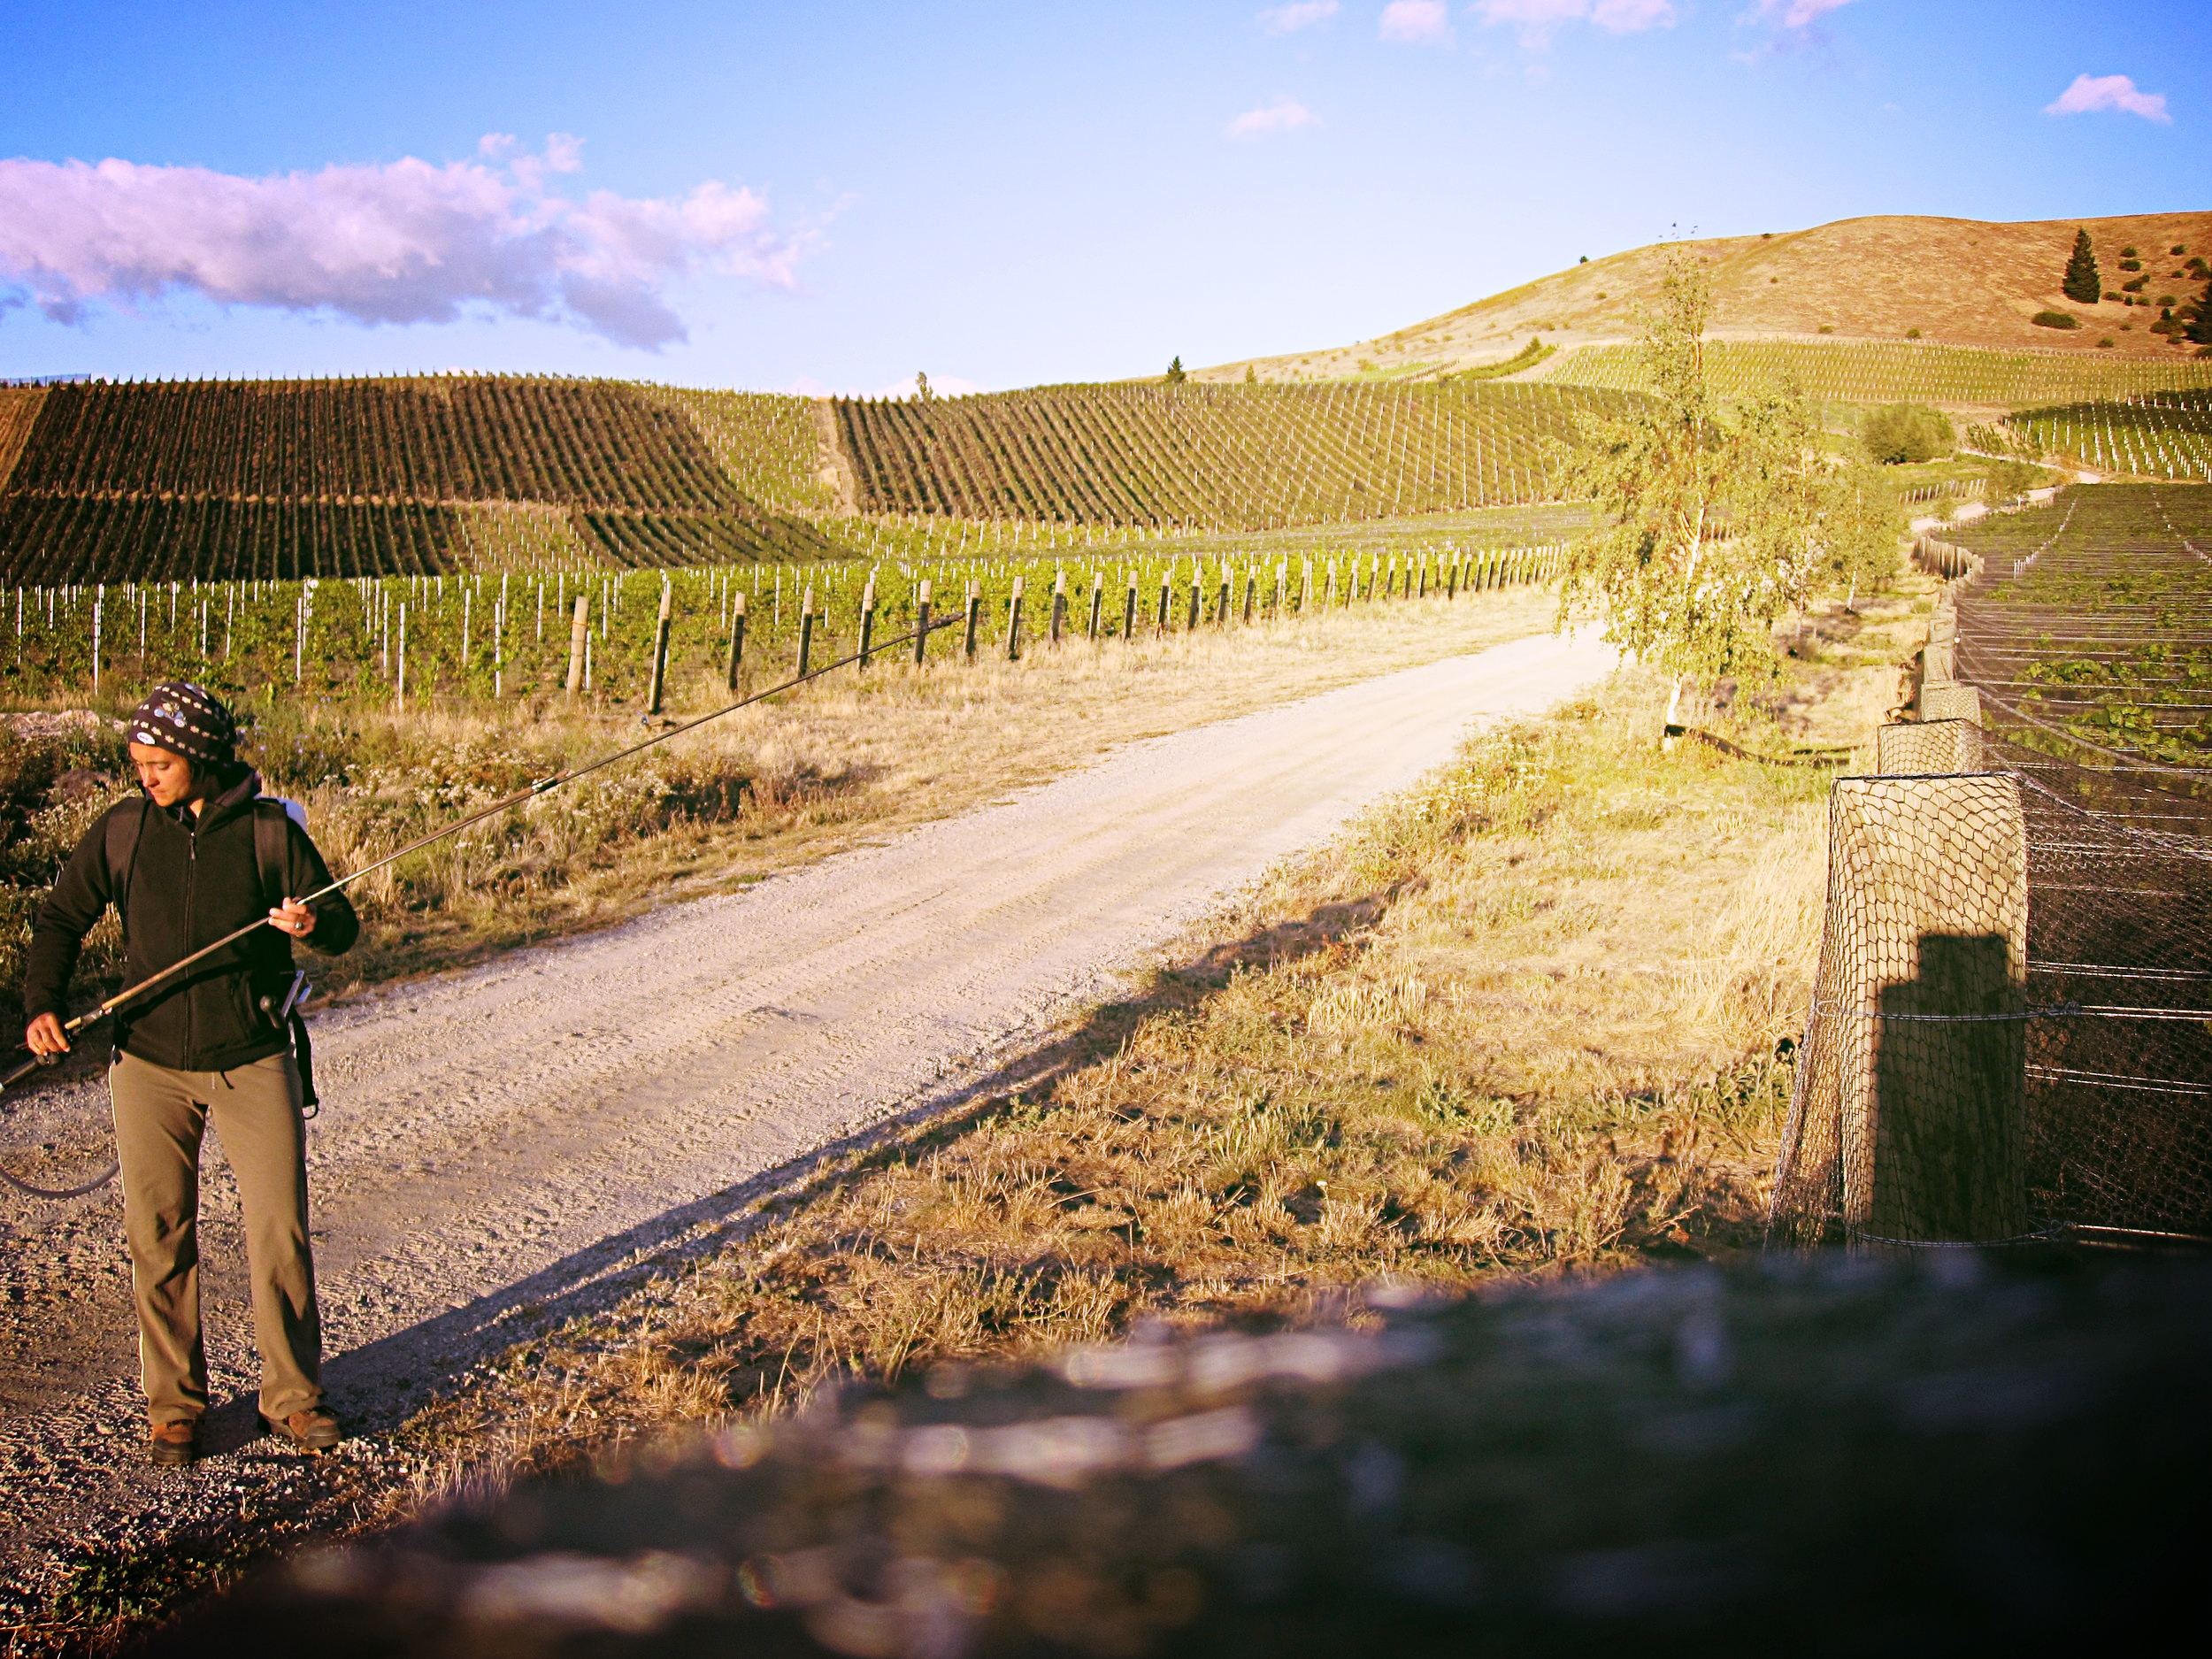 Biodynamic vineyard work | Central Otago, New Zealand (Mar. 2010)